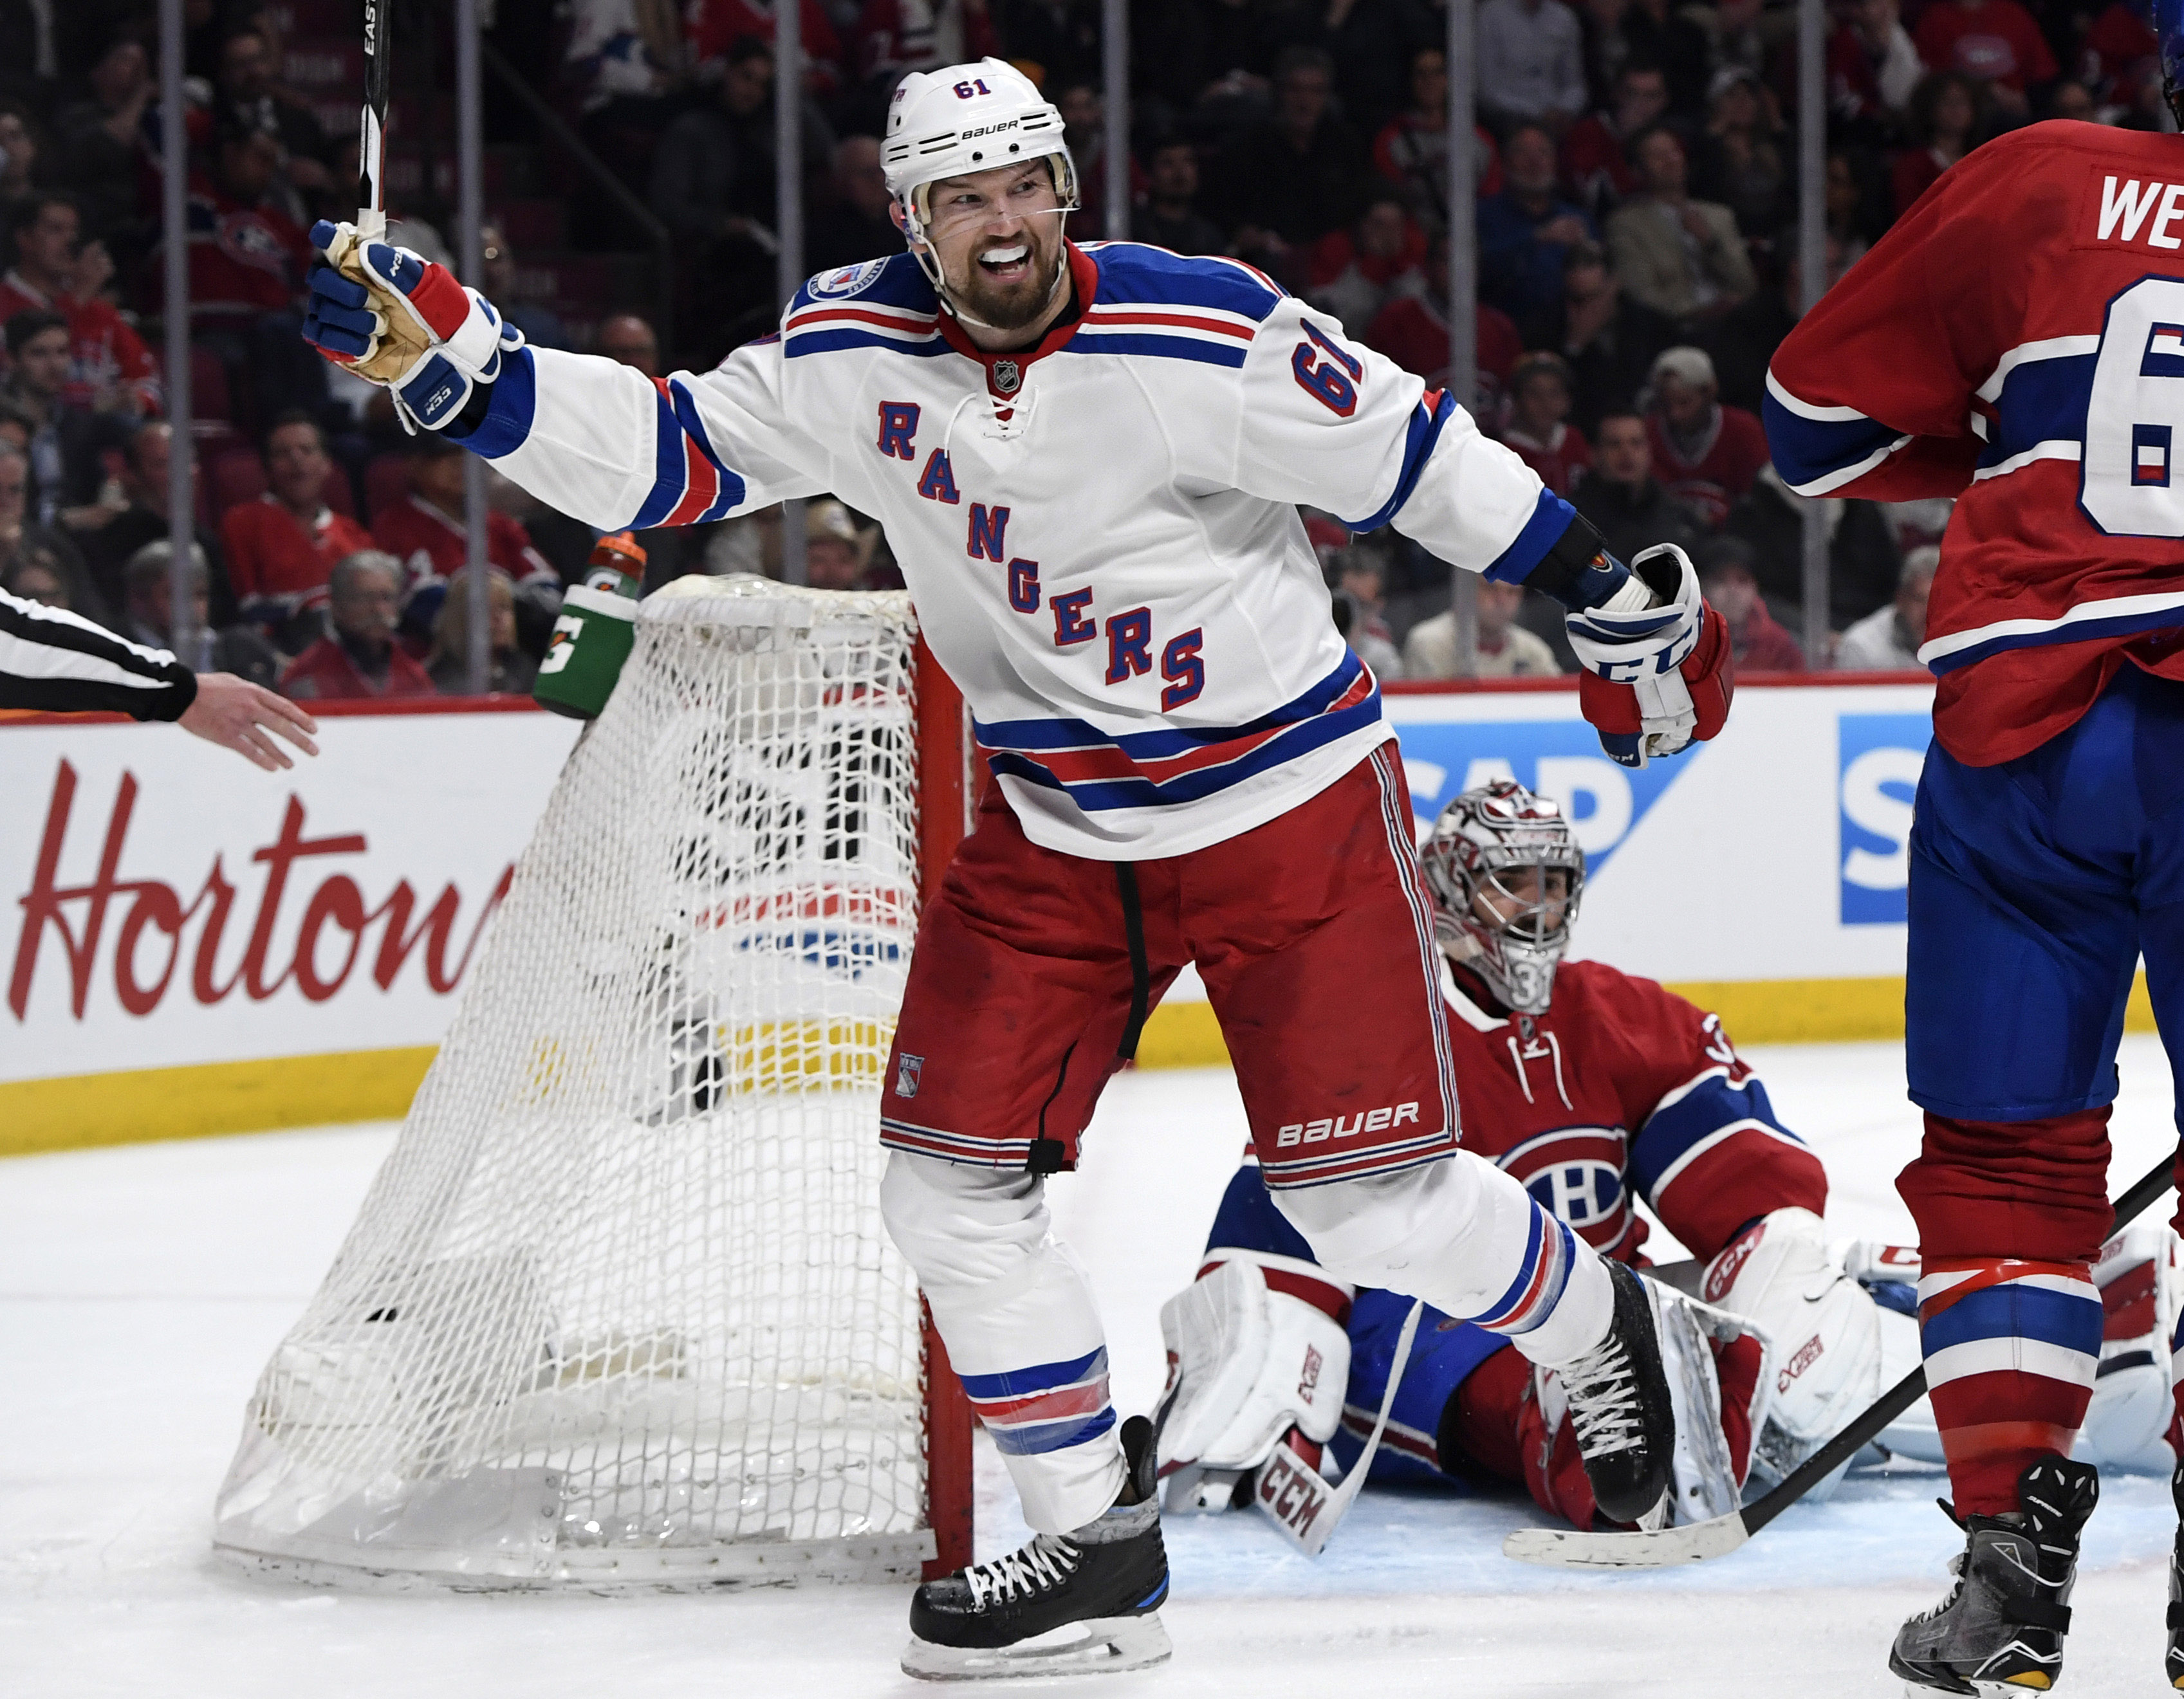 10022581-nhl-stanley-cup-playoffs-new-york-rangers-at-montreal-canadiens